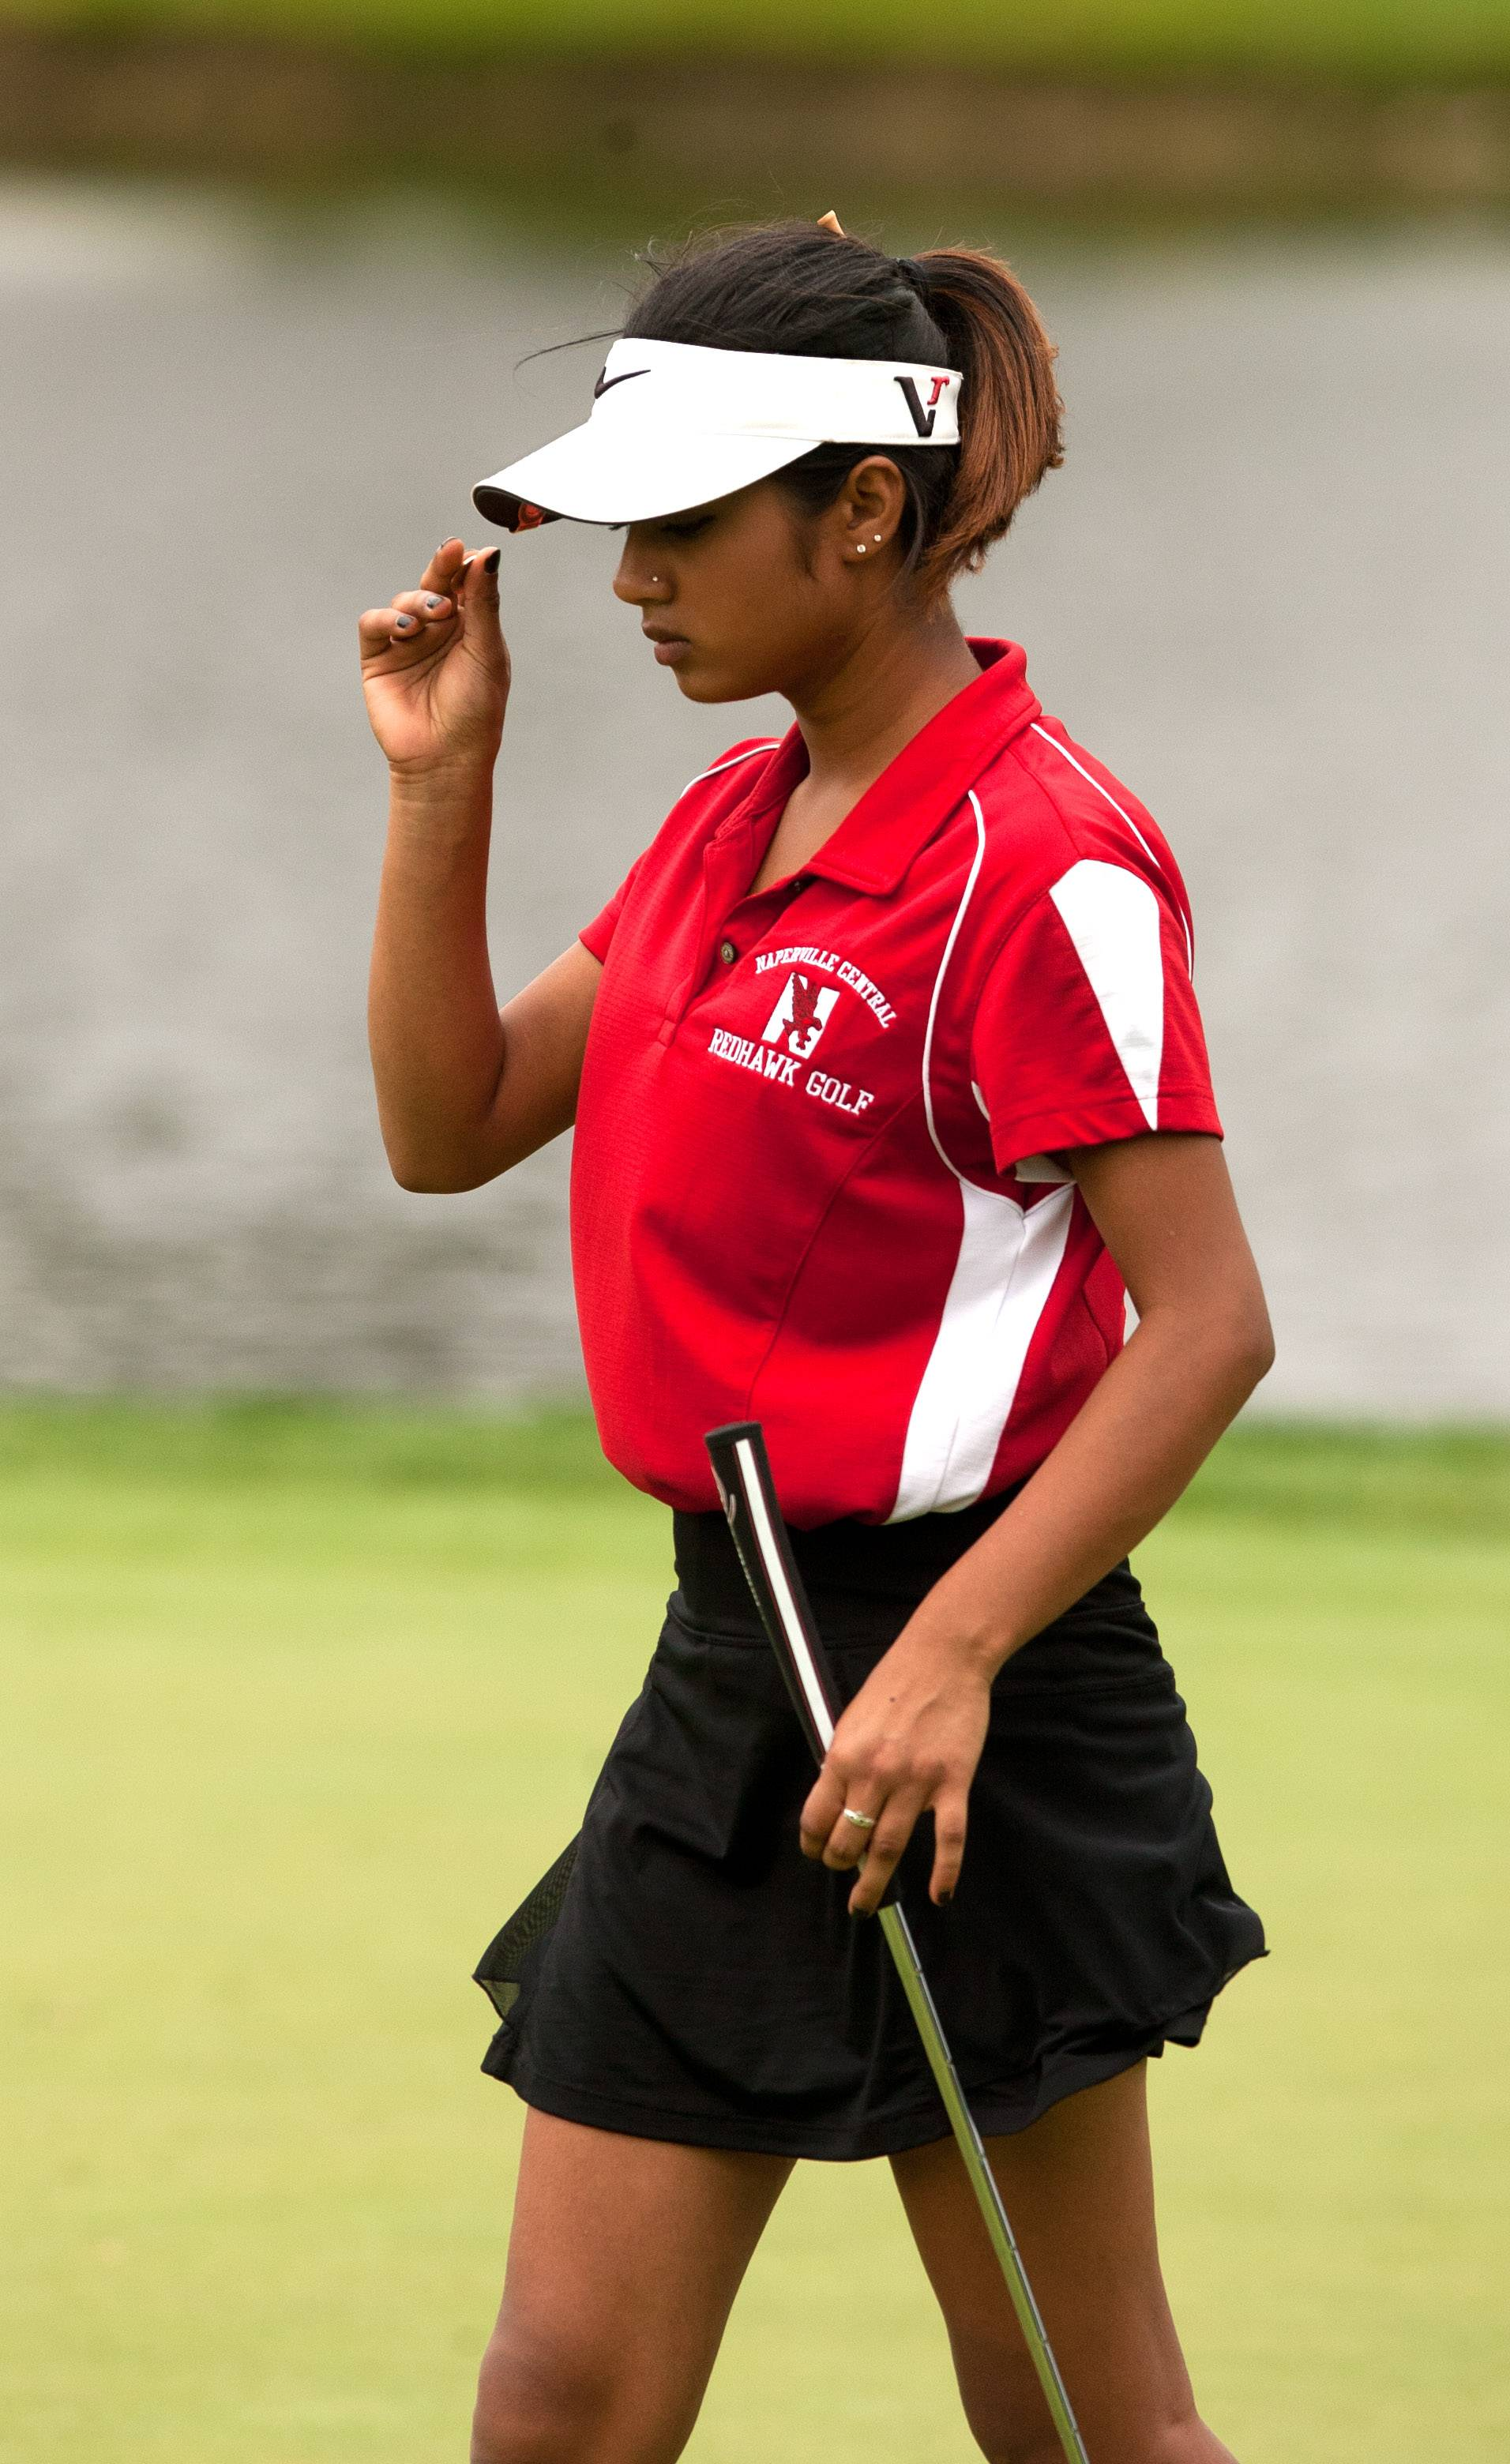 Naperville Central's Riya Anand walks the green during the Vern McGonagle Memorial High School Golf Championship at the Naperville Country Club.